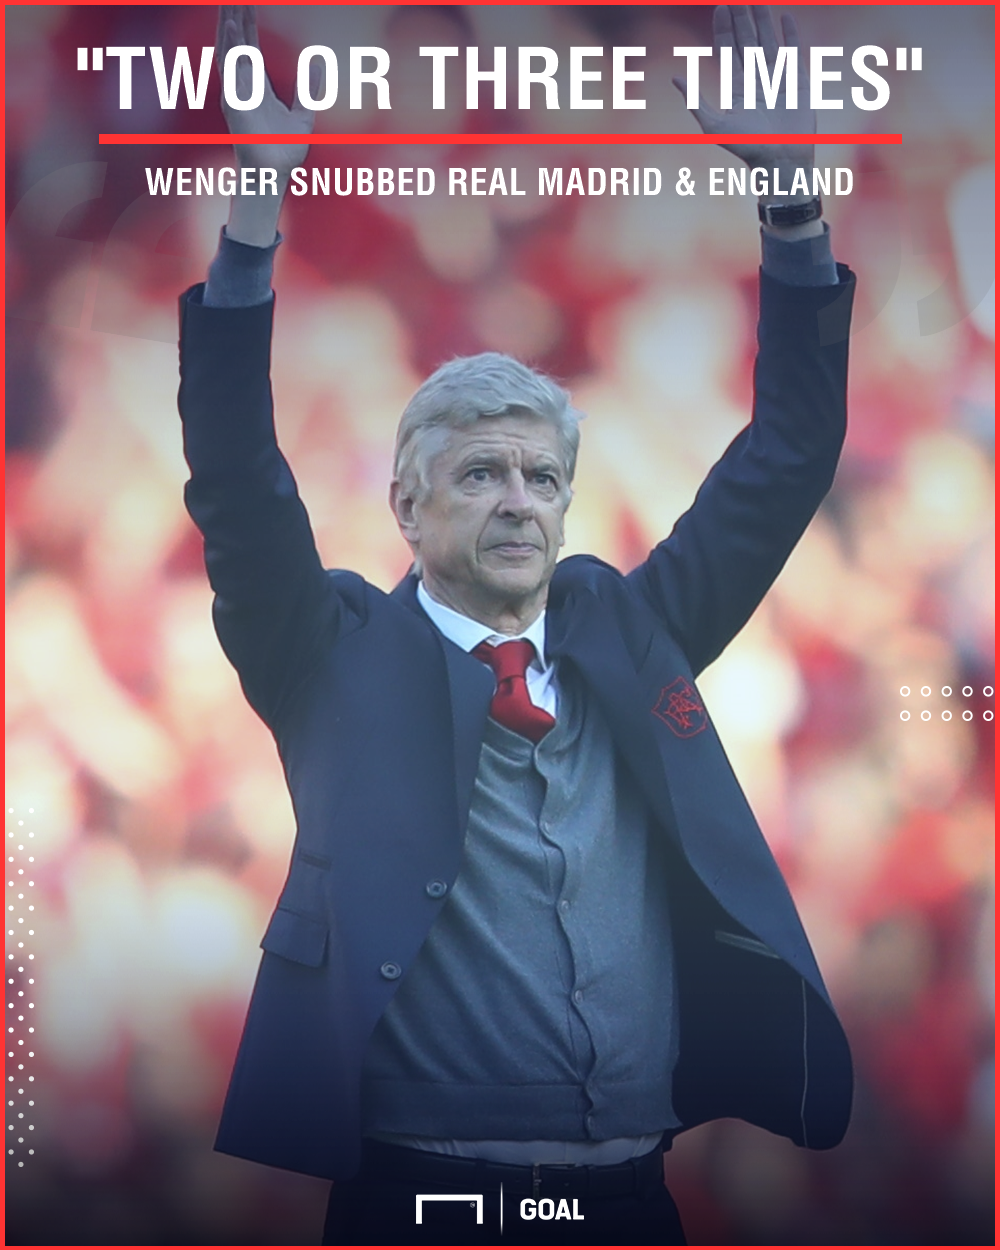 Arsene Wenger turned down Real Madrid and England